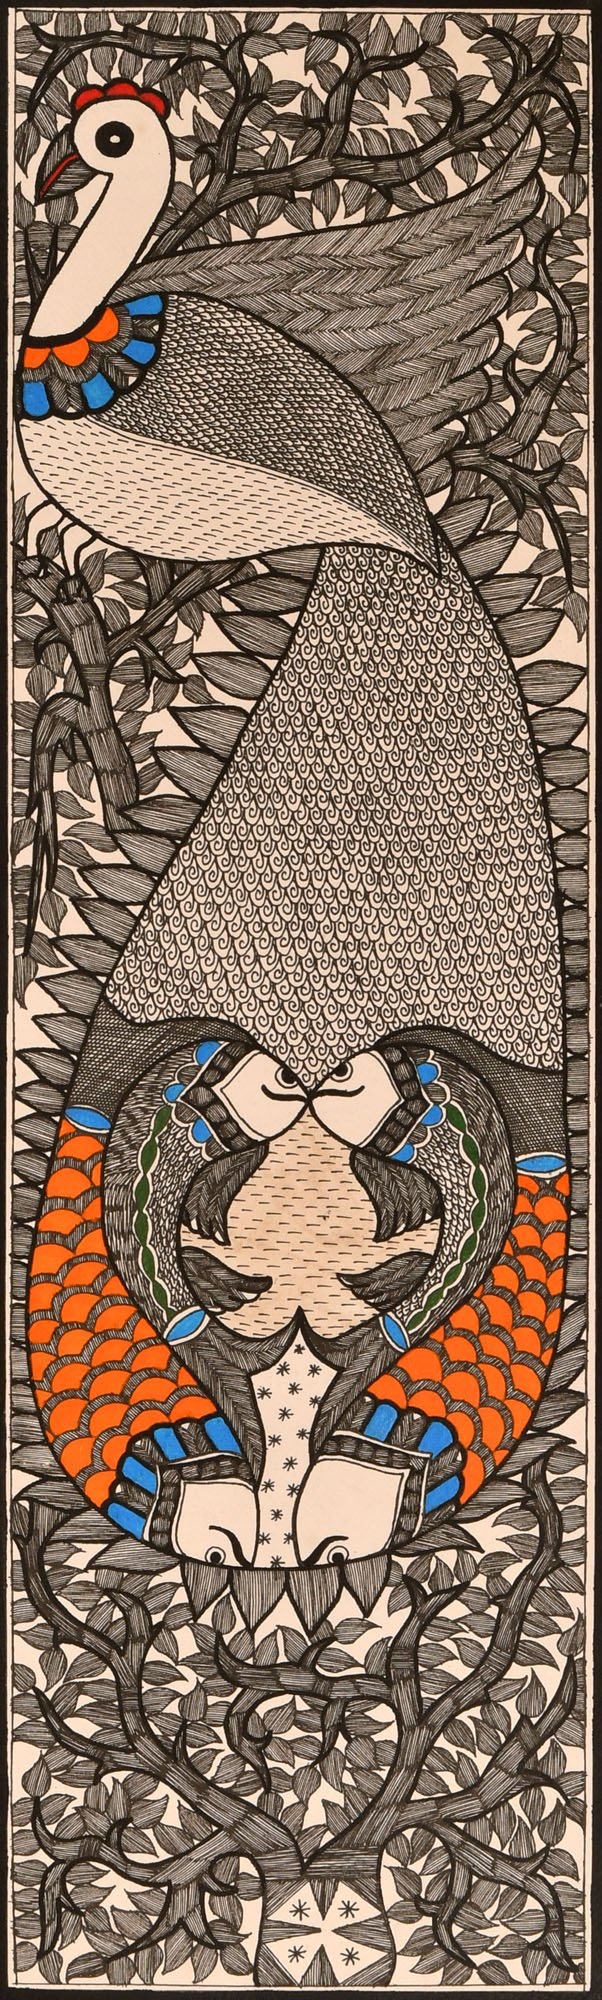 Peacock and Pairs of Fishes - Madhubani Painting on Hand Made Paper - Folk Painting from the Village